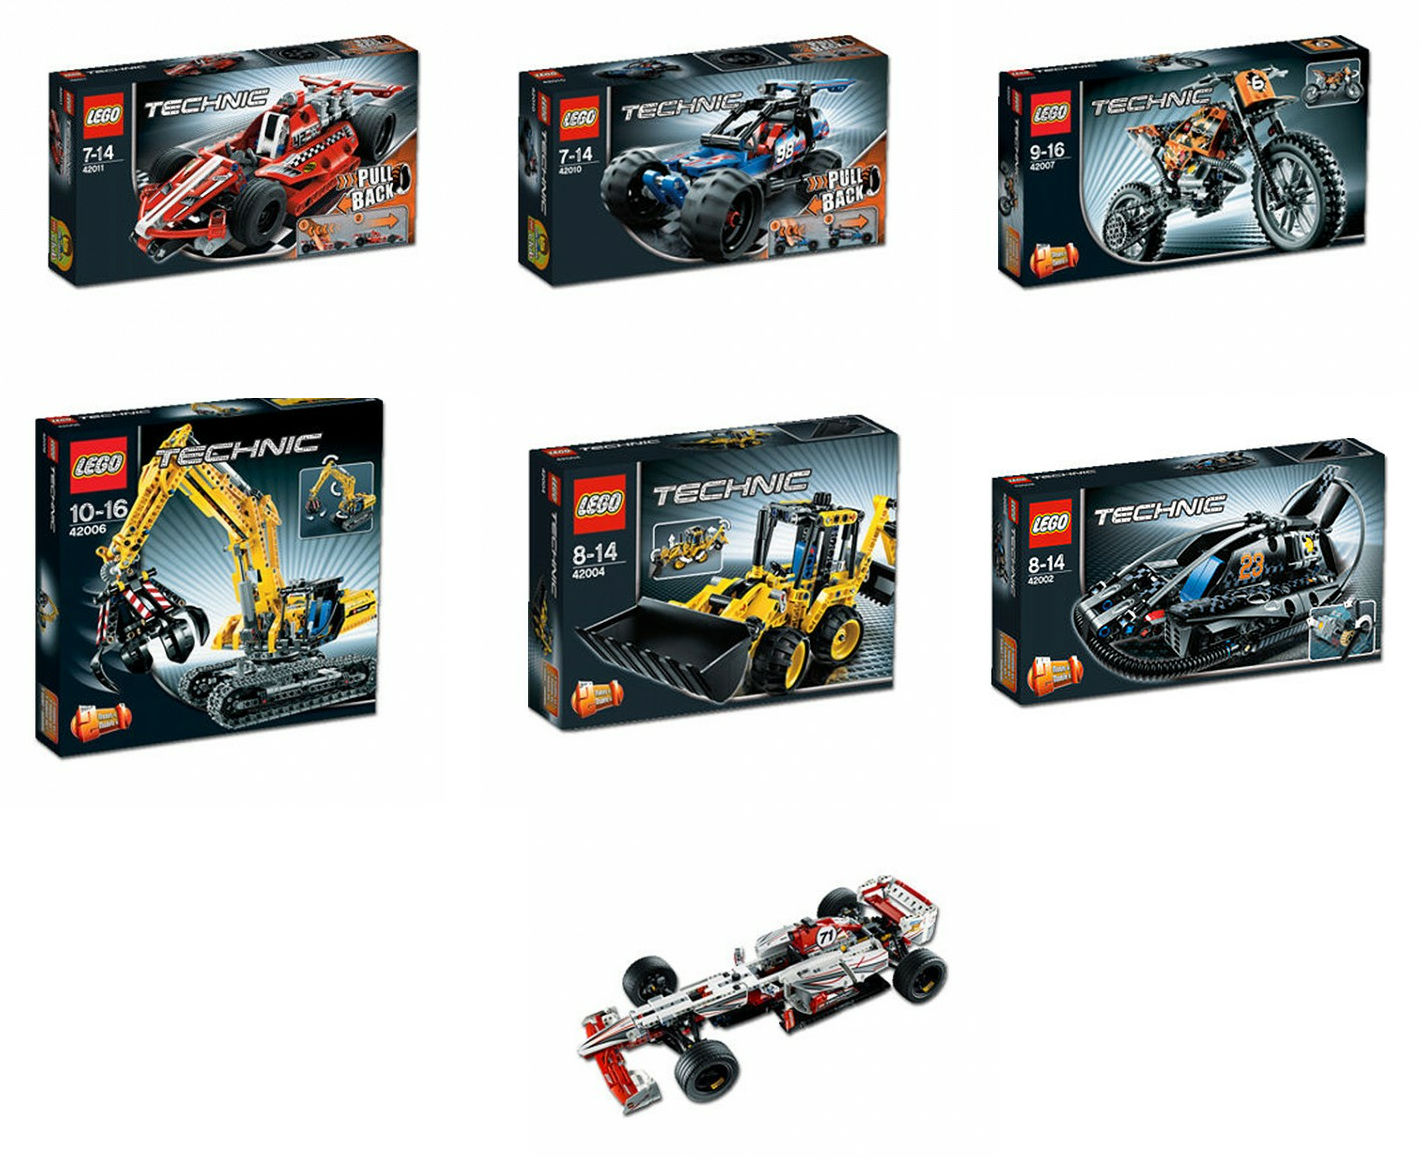 2013 technic sets complete line up the lego car blog. Black Bedroom Furniture Sets. Home Design Ideas